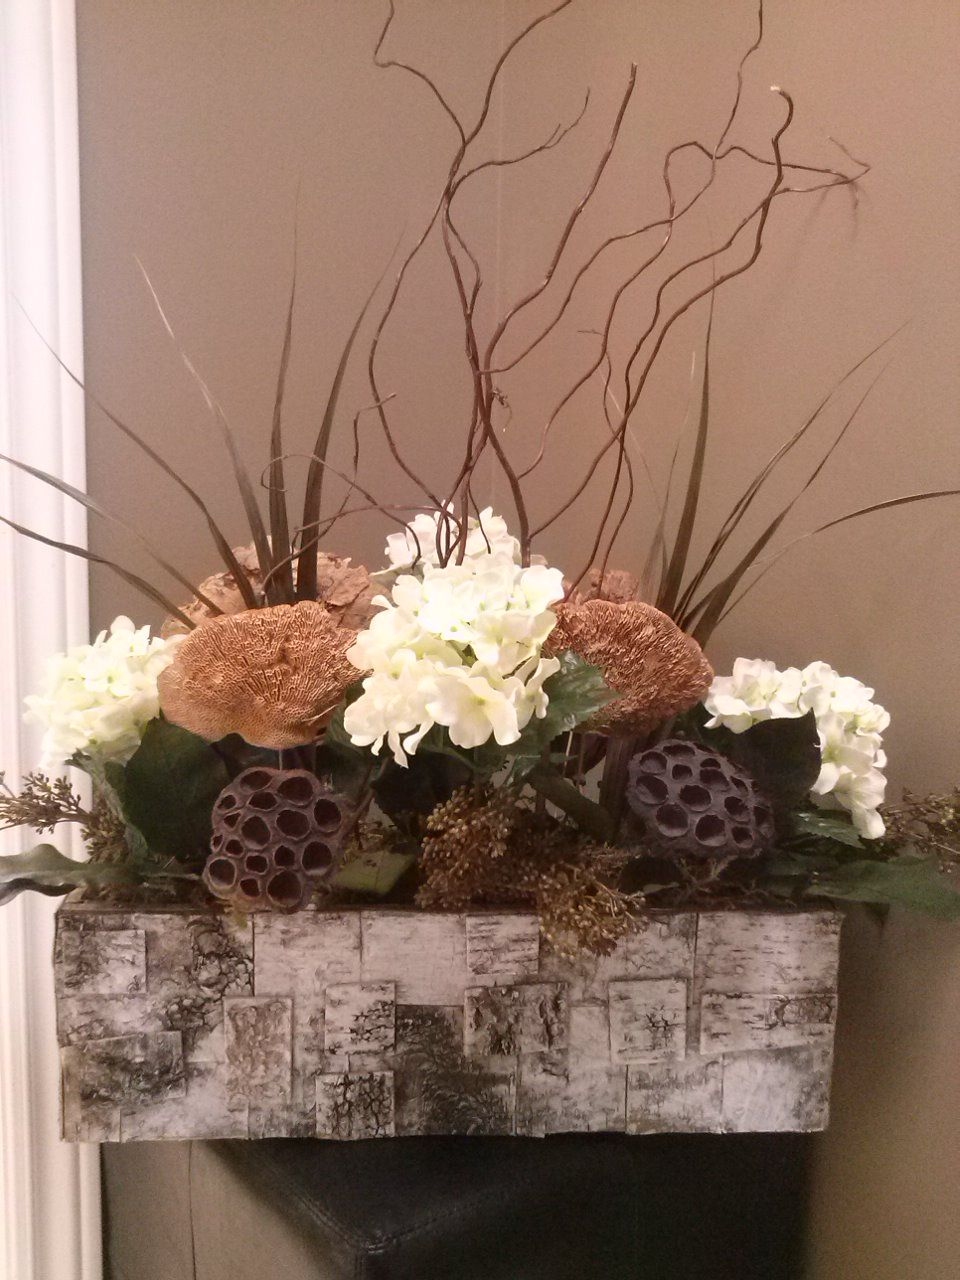 Designed By Sonya Biemann At Lemongrass In Timmins On Canada Flower Decorations Flower Arrangements Dried Flowers